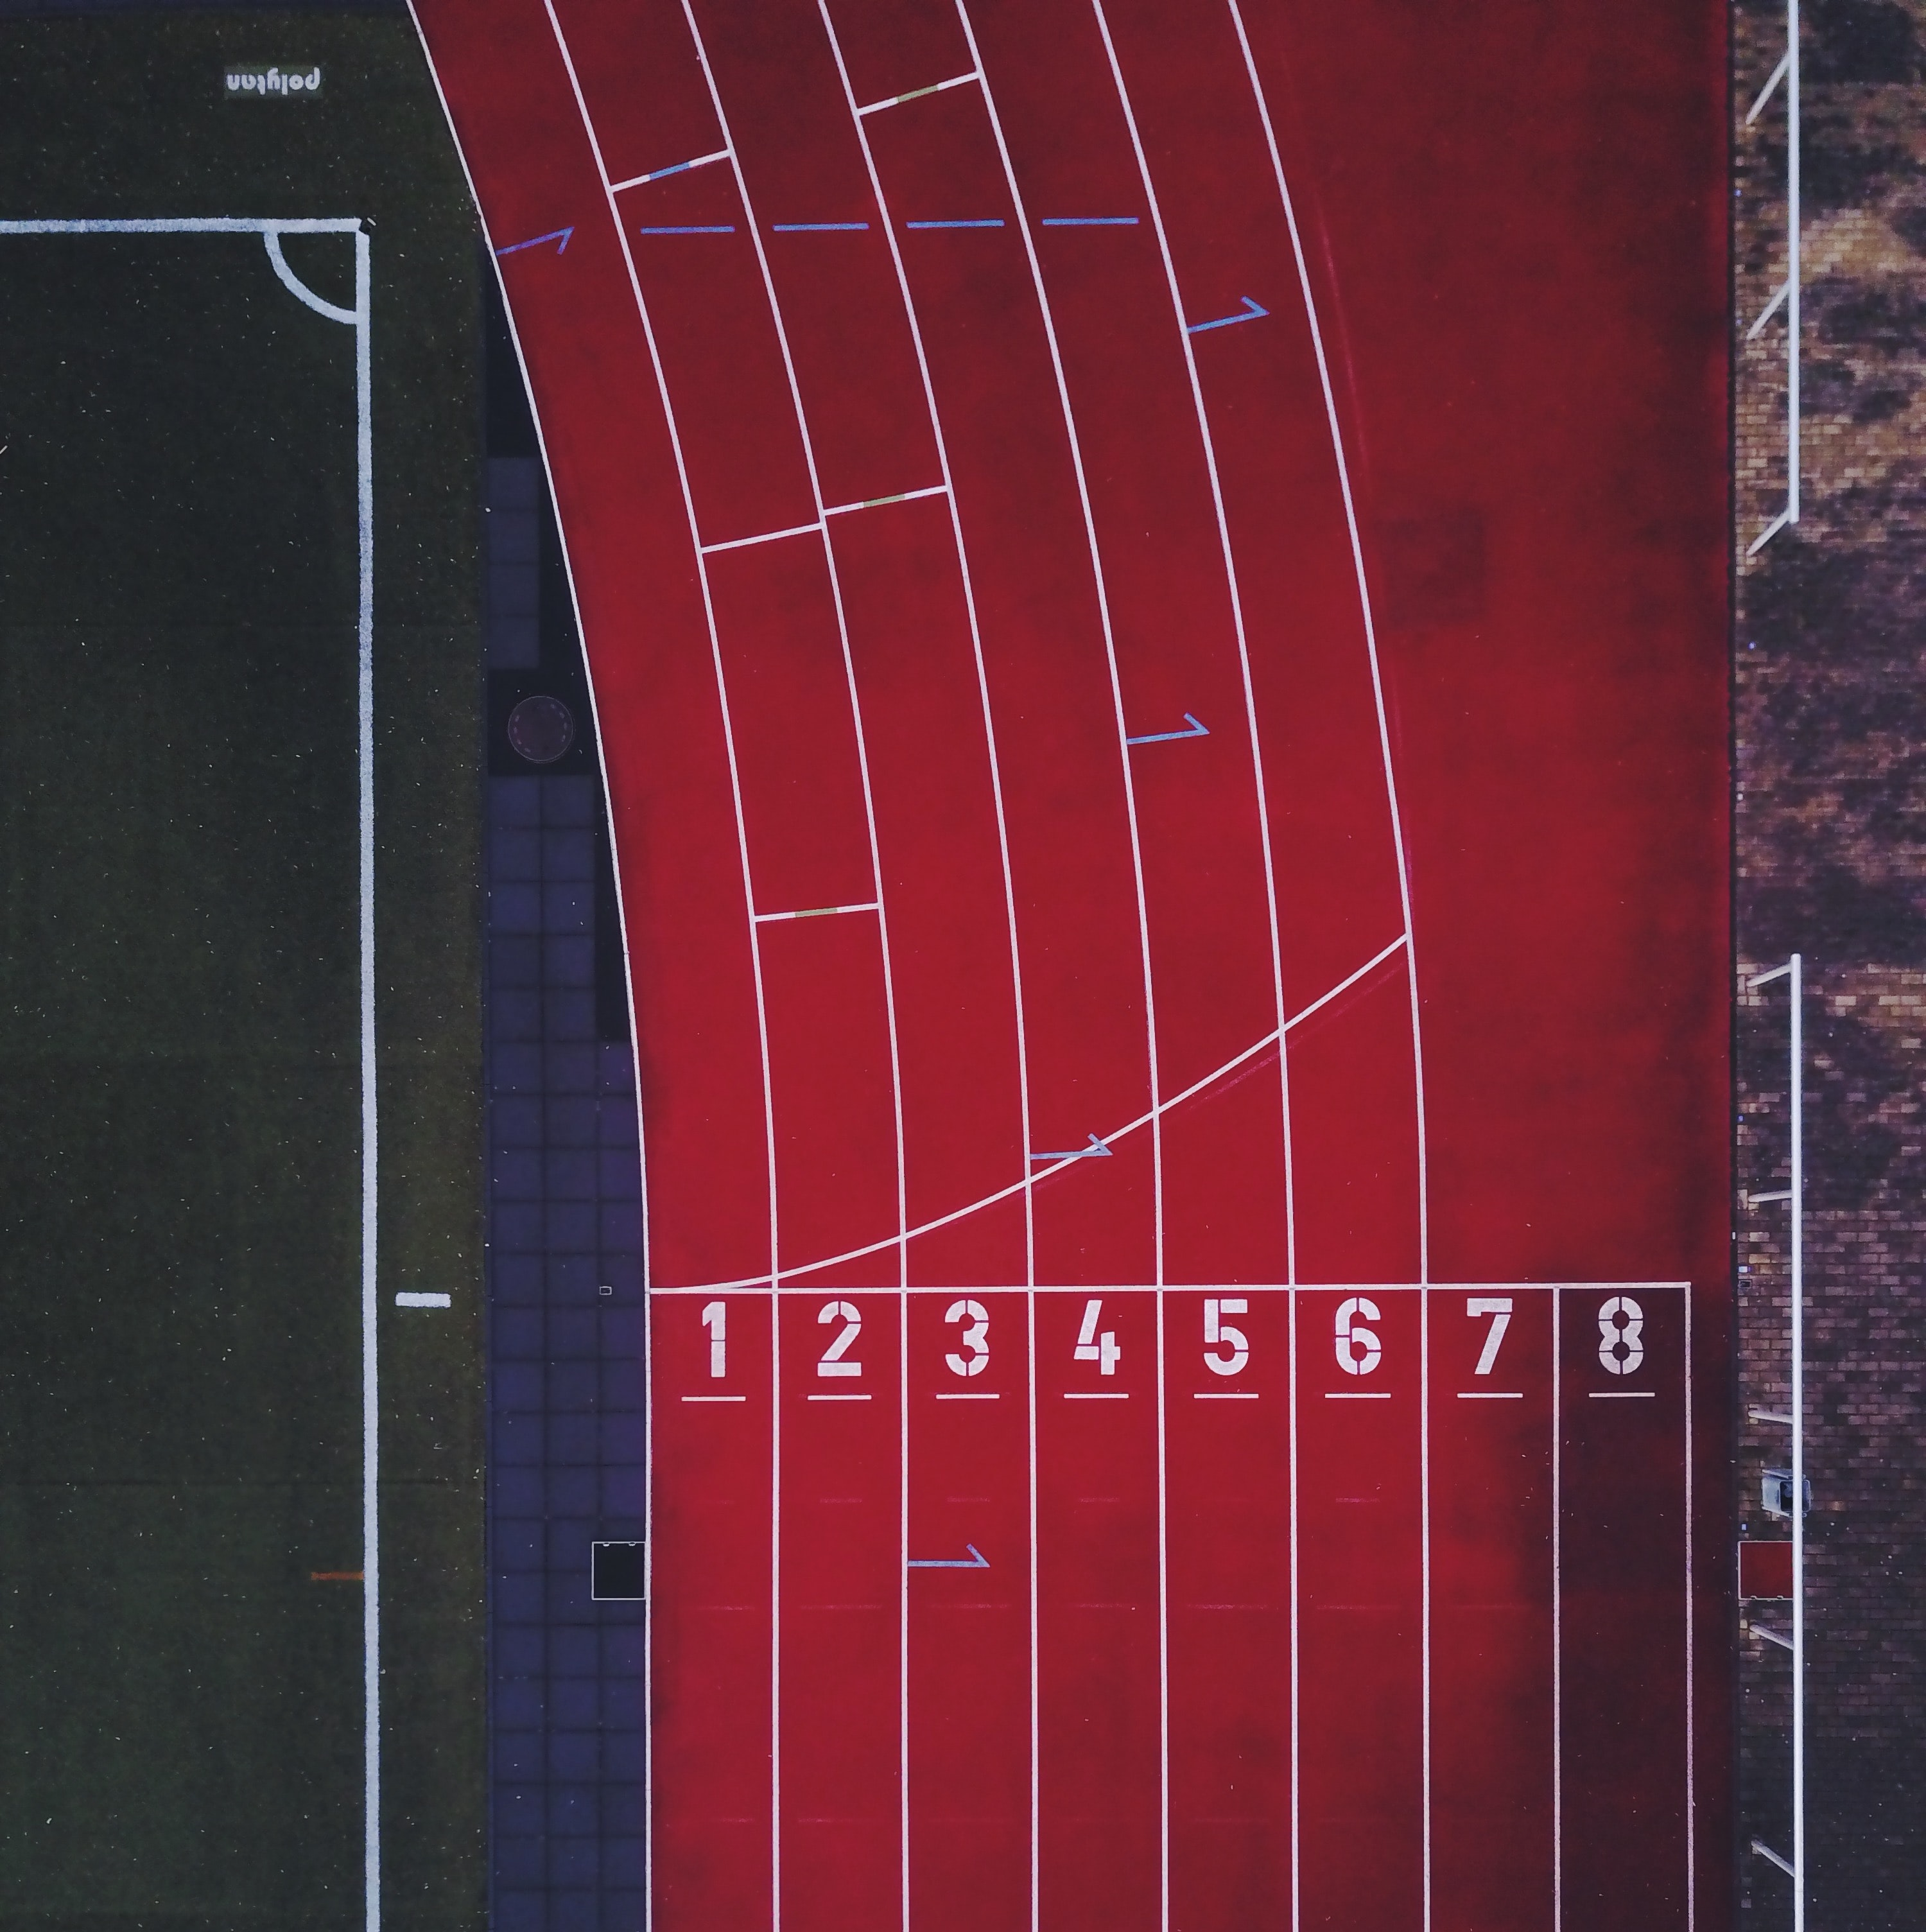 aerial photo of track and field race track